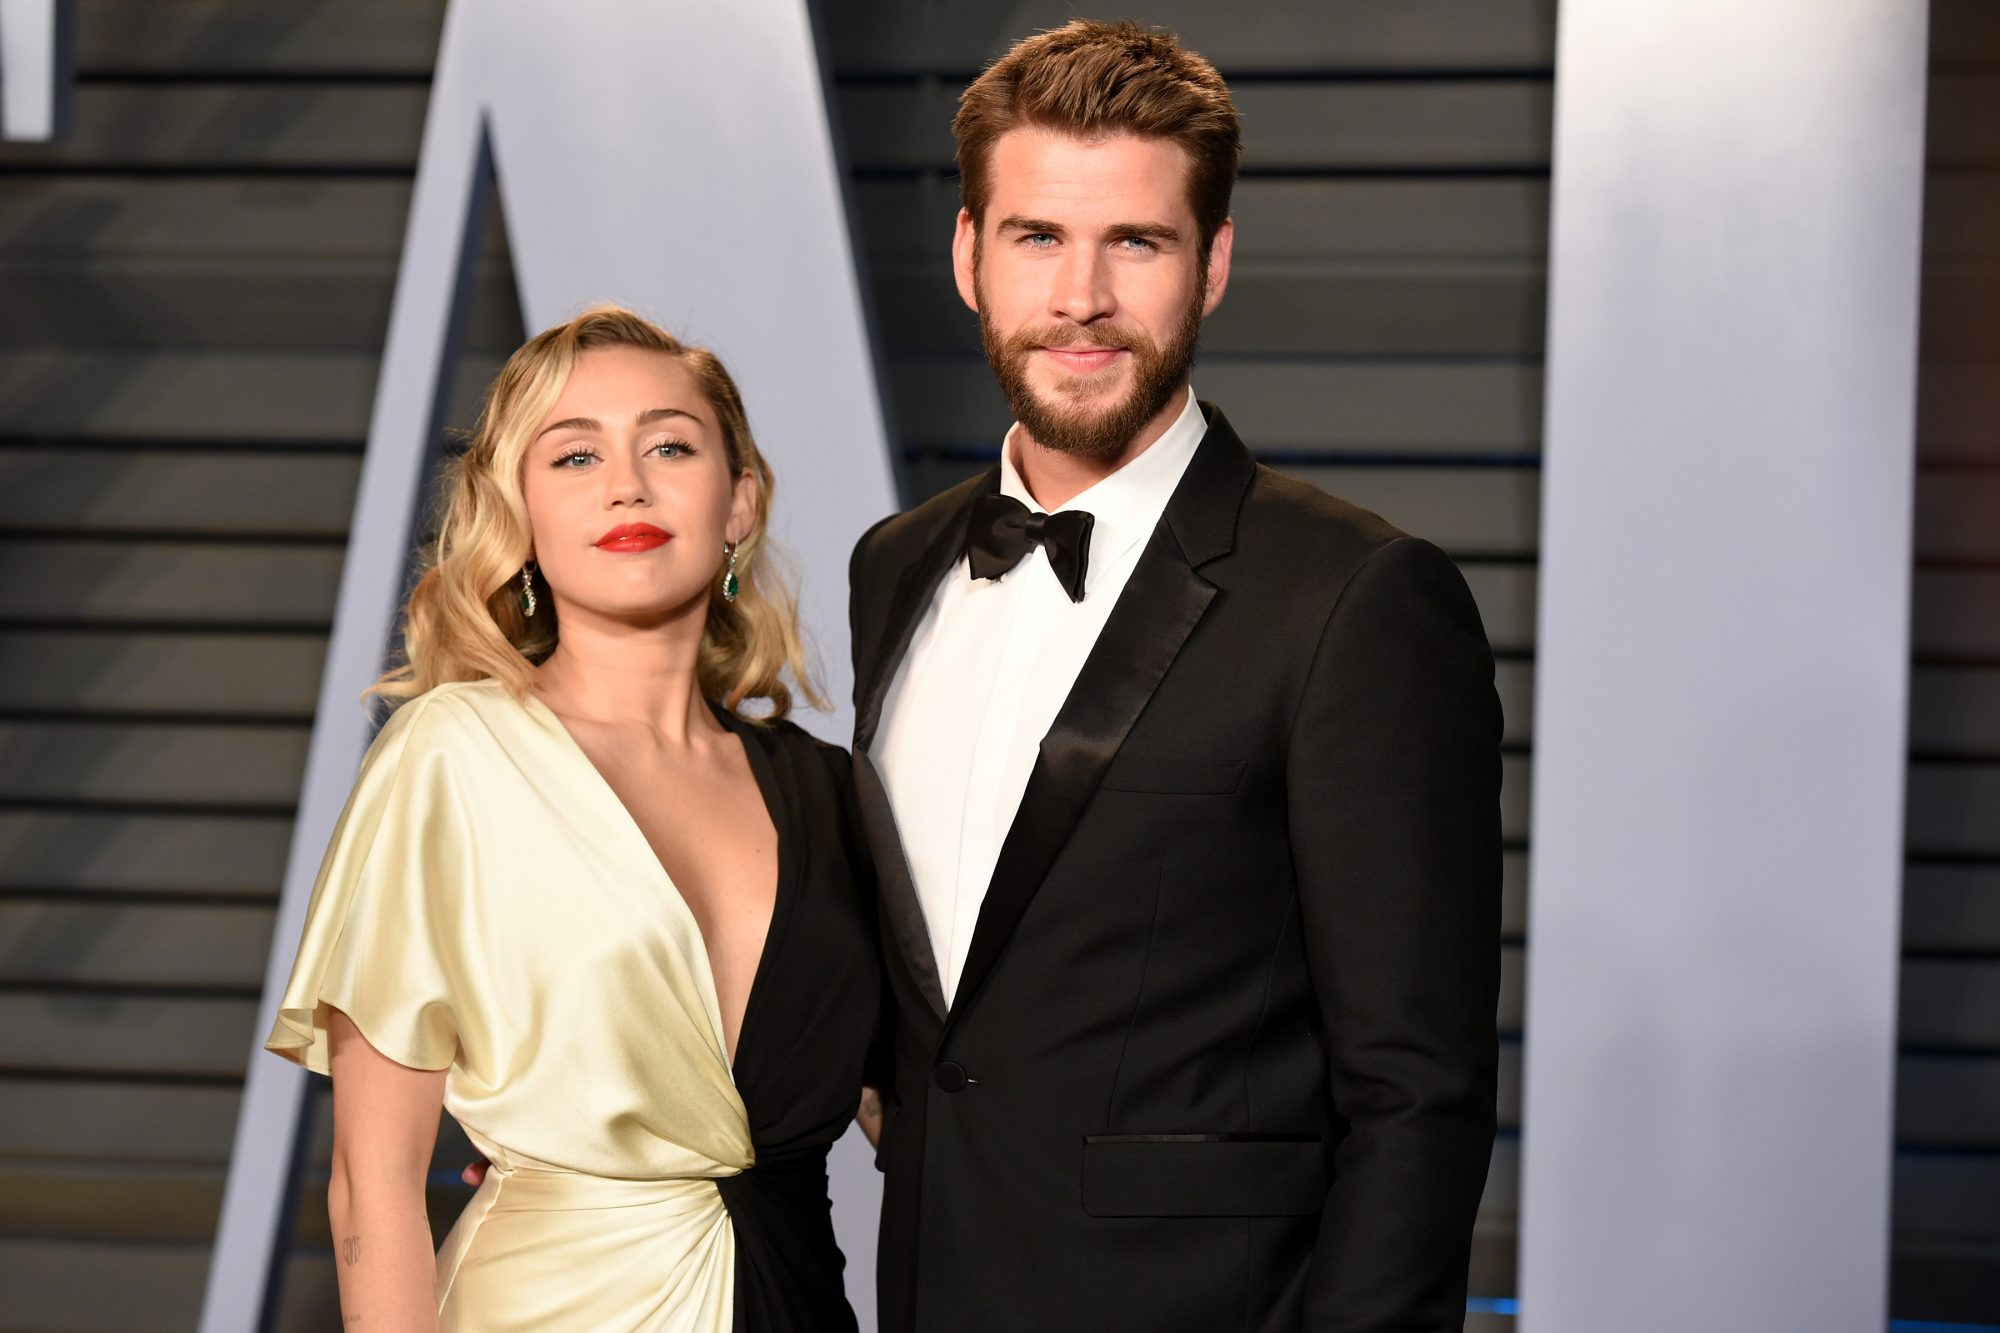 Miley Cyrus on Being a 'Queer Person' in a 'Hetero Relationship' with Husband Liam Hemsworth